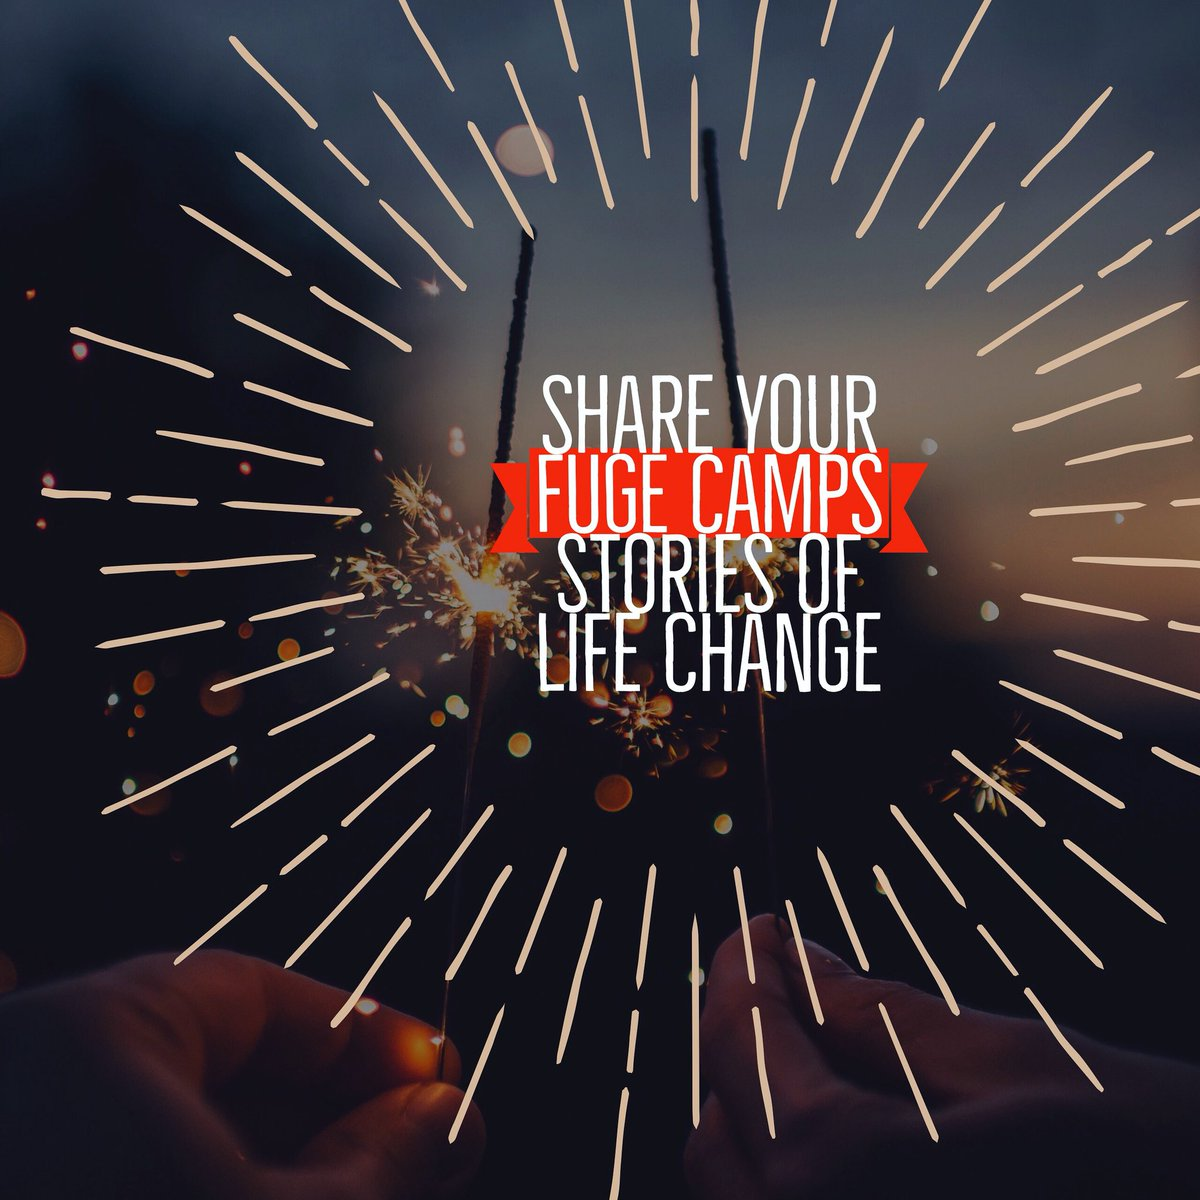 test Twitter Media - Have you experienced life change at FUGE Camps? We would love to hear your story. You can email your story to kyle.cravens@lifeway.com. Subject: FUGE Life Change. 1,000 words or less.   We will be posting some of these stories in celebration of FUGE Camps' 40th summer! https://t.co/68s8Xbe2JK